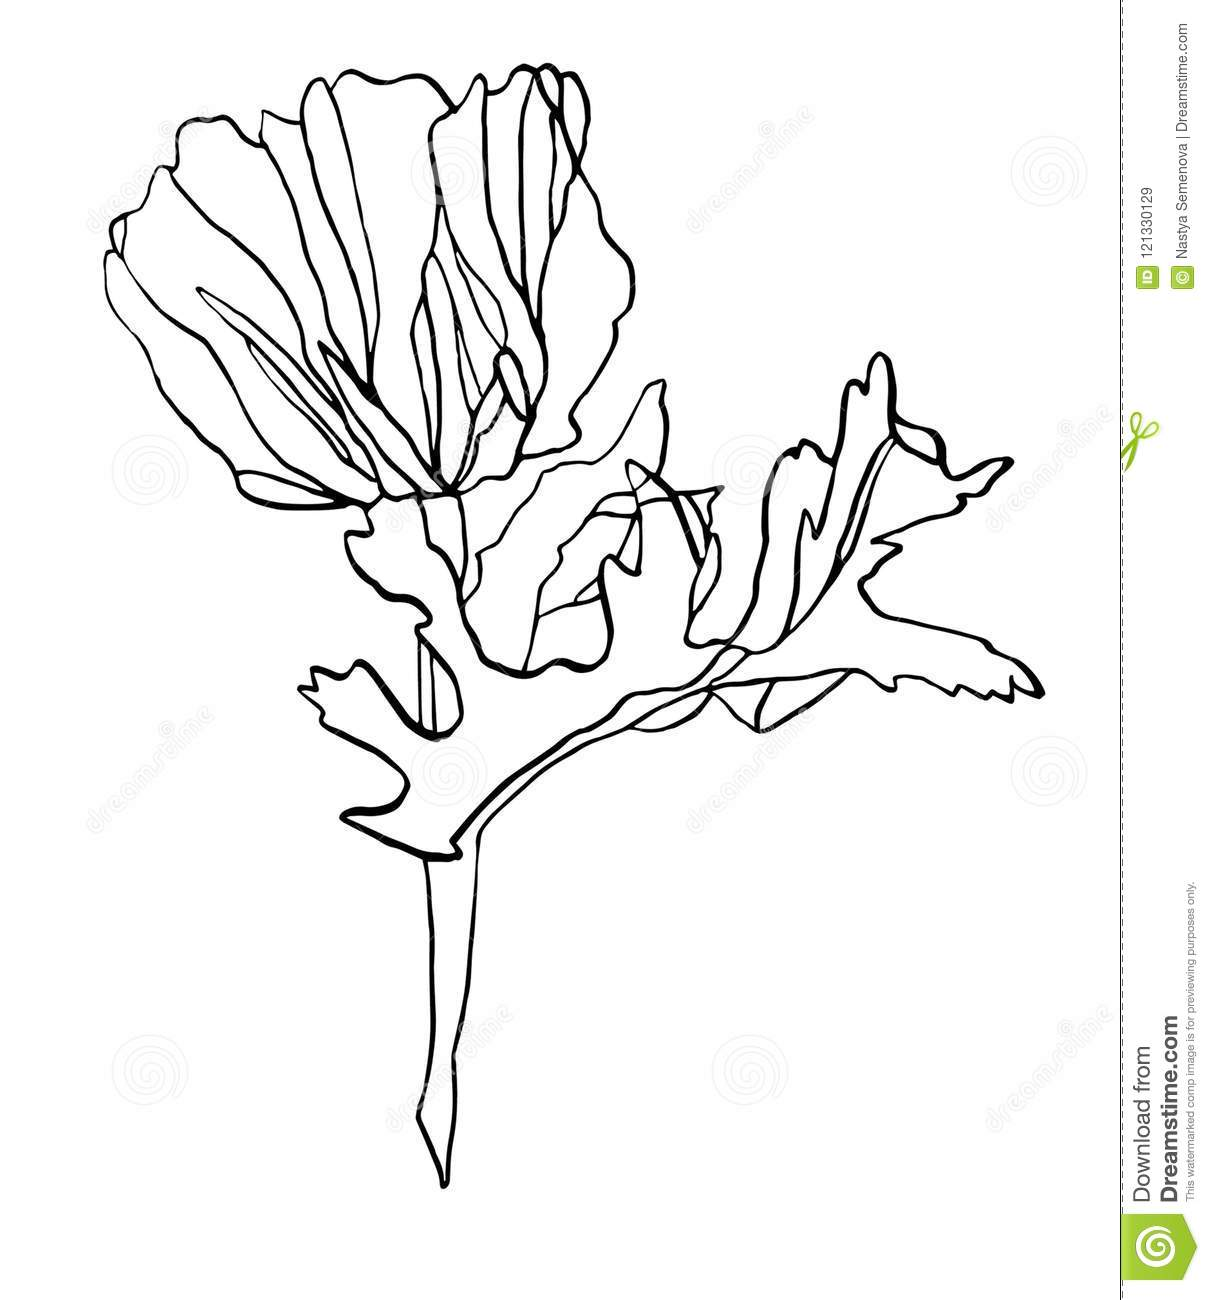 Decorative ink drawing poppy flower with leaves stock illustration decorative ink drawing poppy flower with leaves mightylinksfo